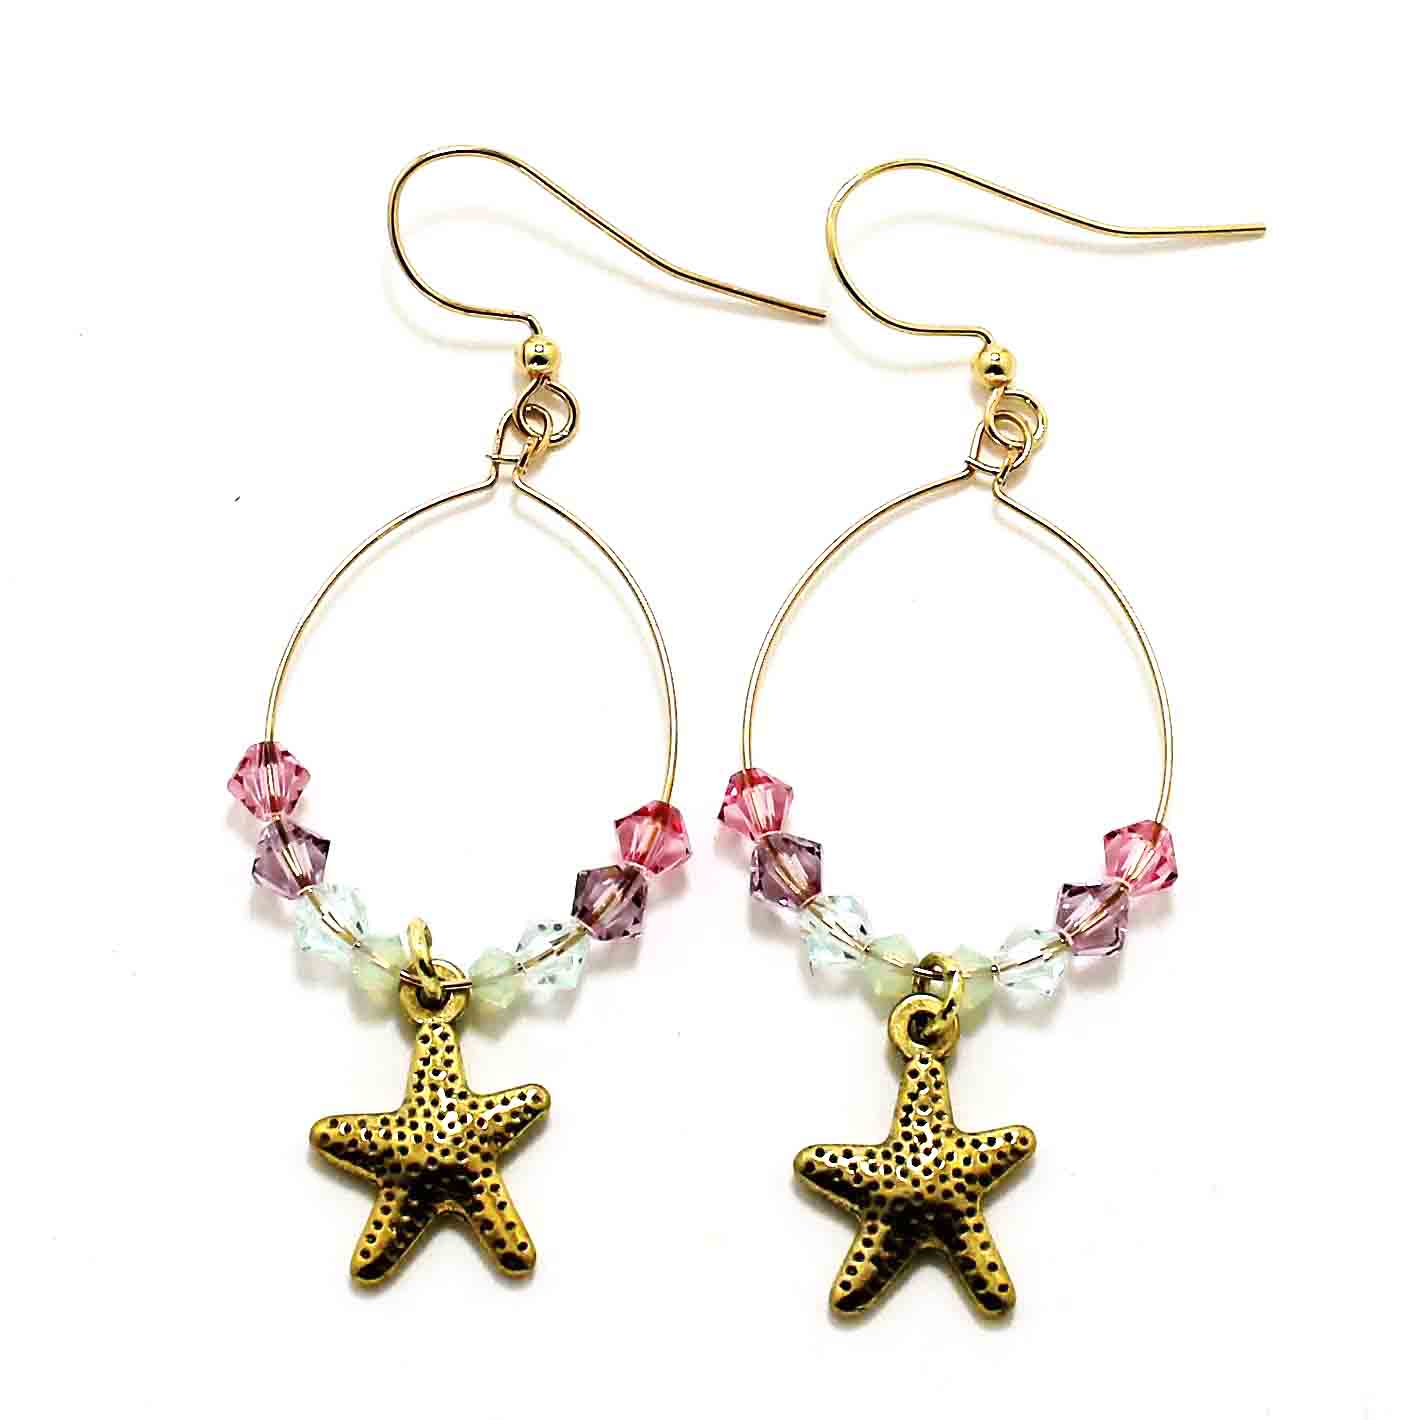 �n���C�A���A�N�Z�T���[/ �yHatorie�zAloha Resort Style Accessory / Gold Plated Earring